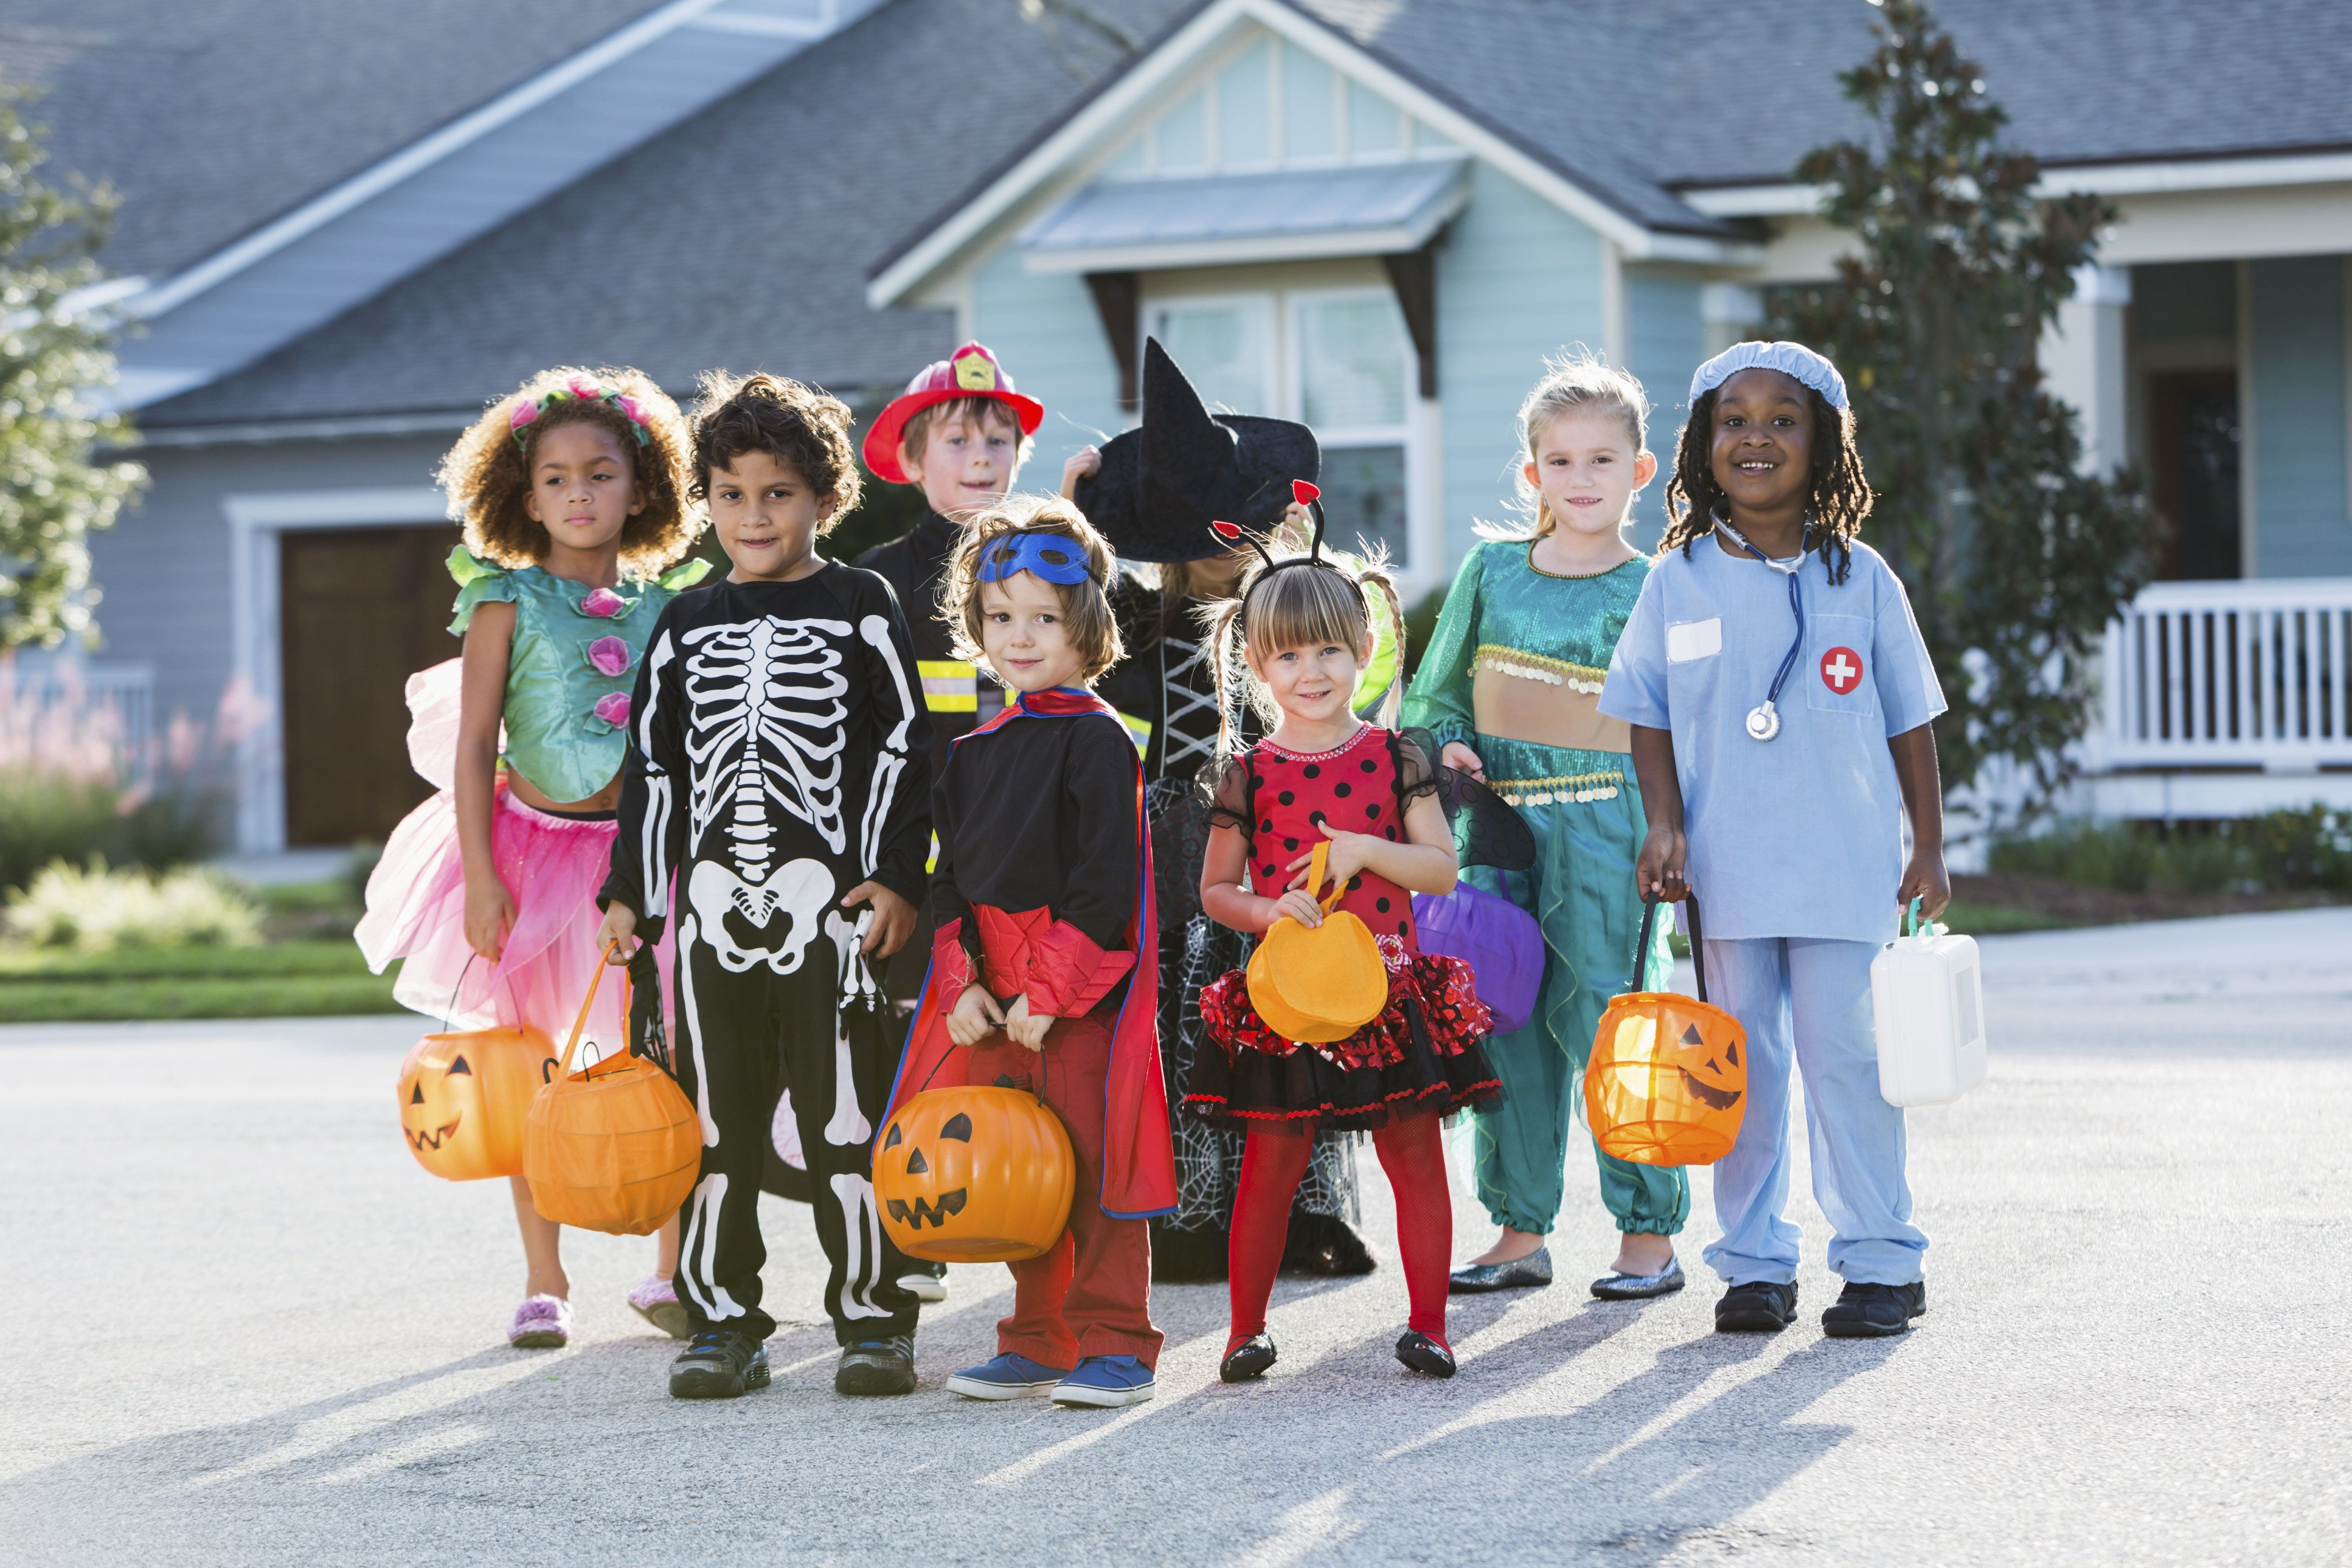 Multi-ethnic group of children 3-6 years old, wearing halloween costumes.